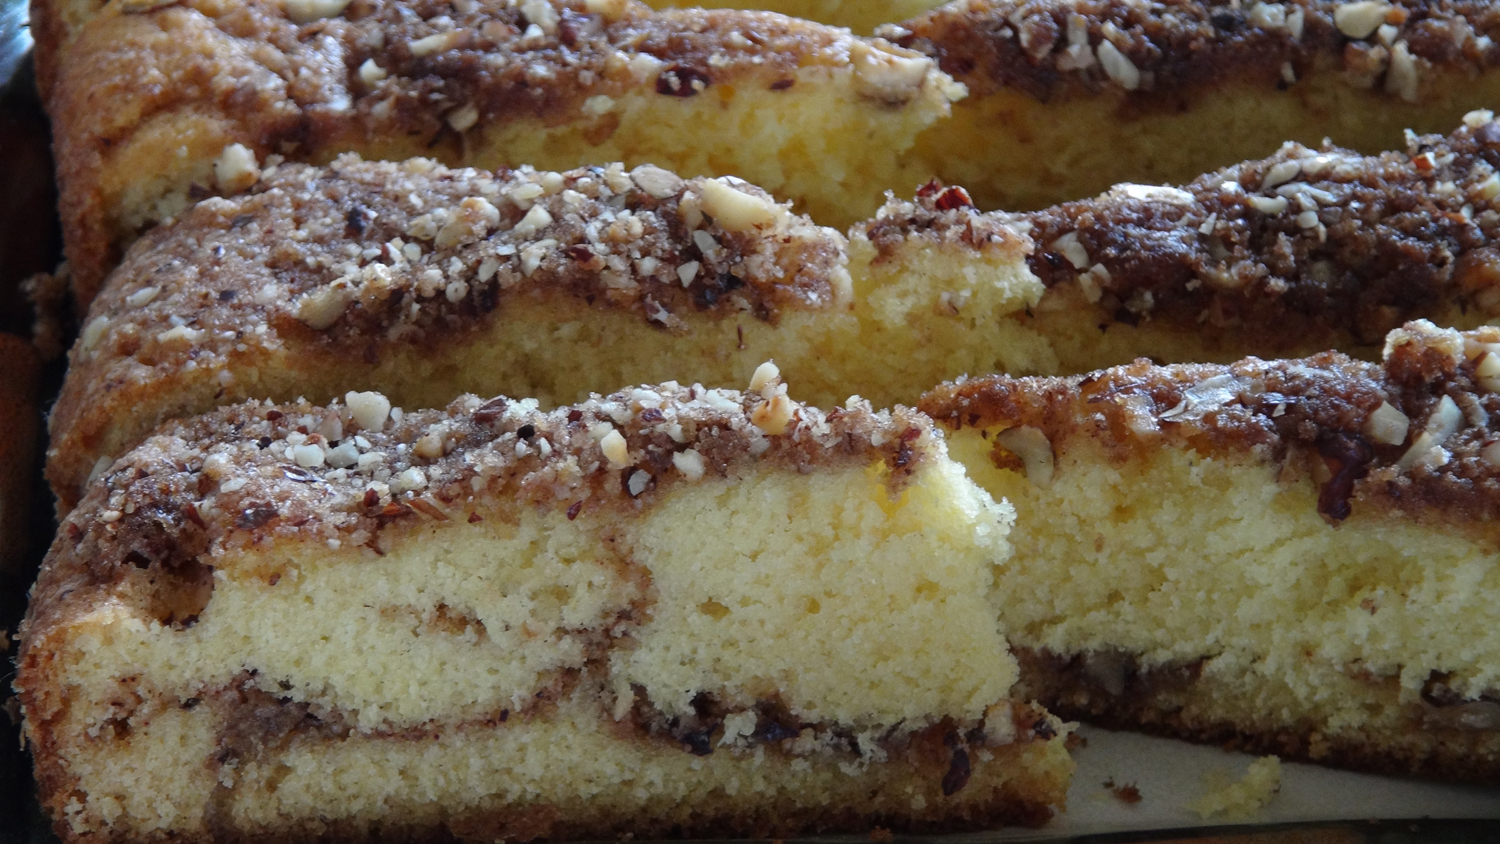 Sour Cream Coffee Cake - The Frugal Chef